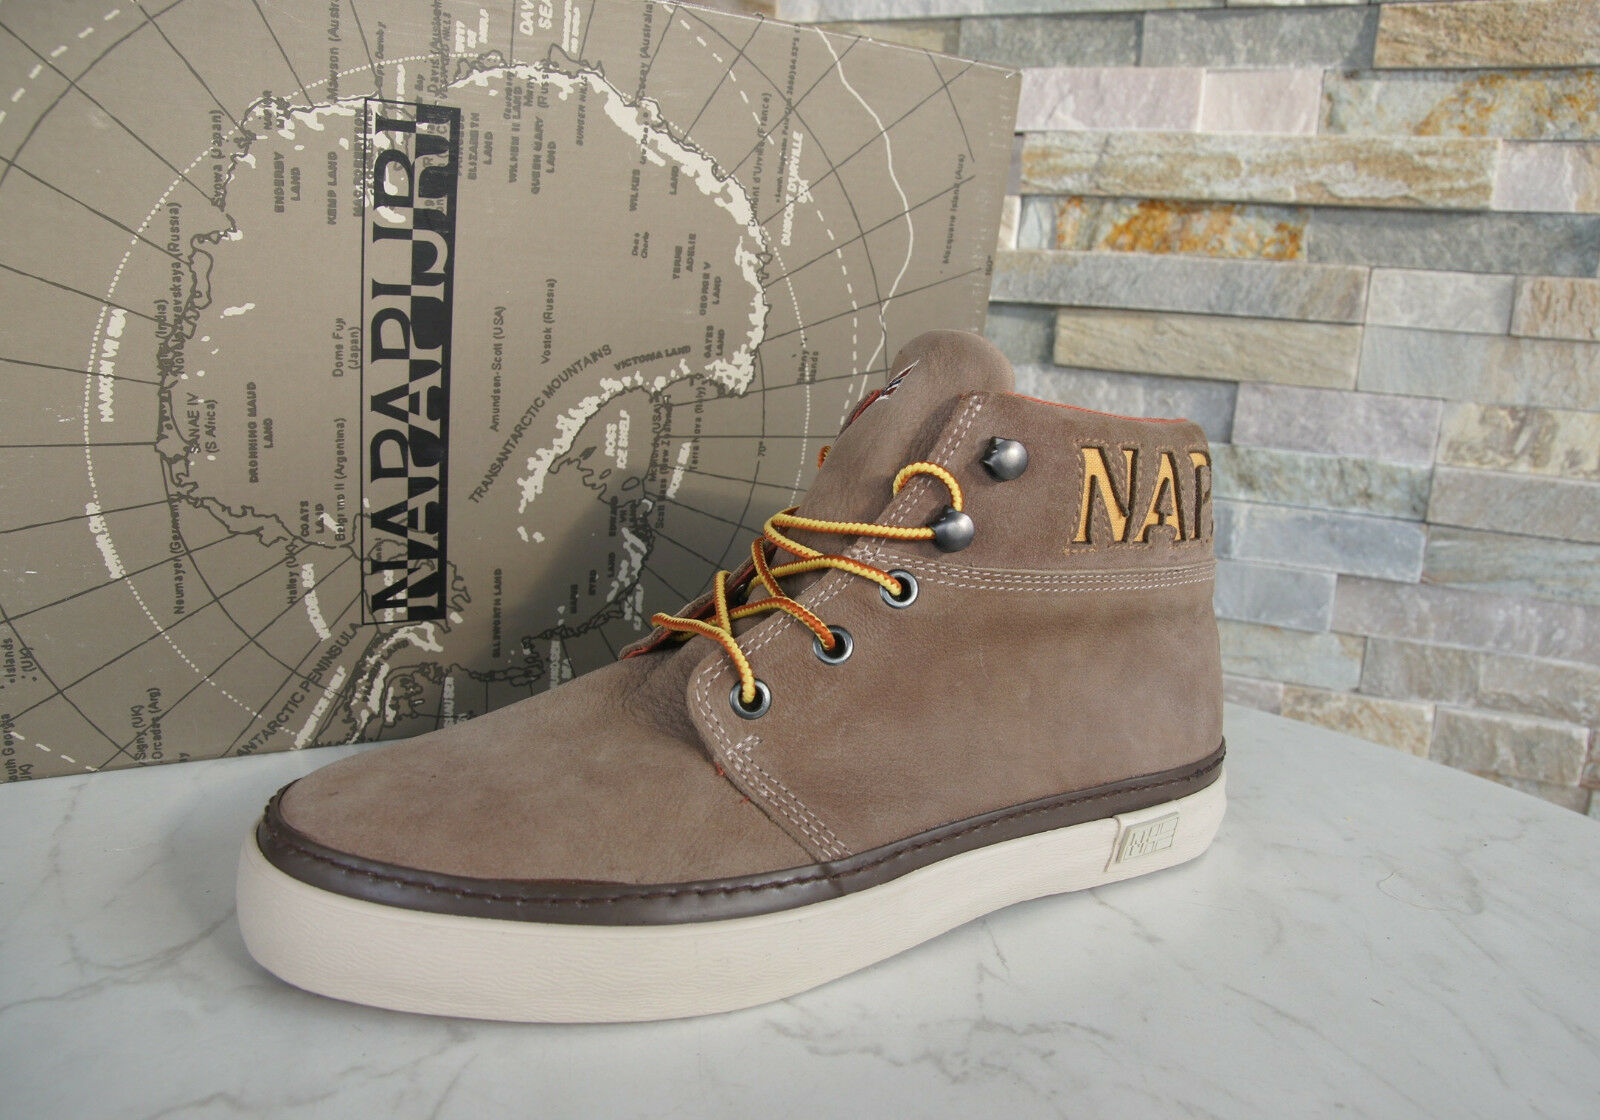 Napapijri Size 46 12 shoes Jakob High-Top Sneakers Trainers Antique Taupe New